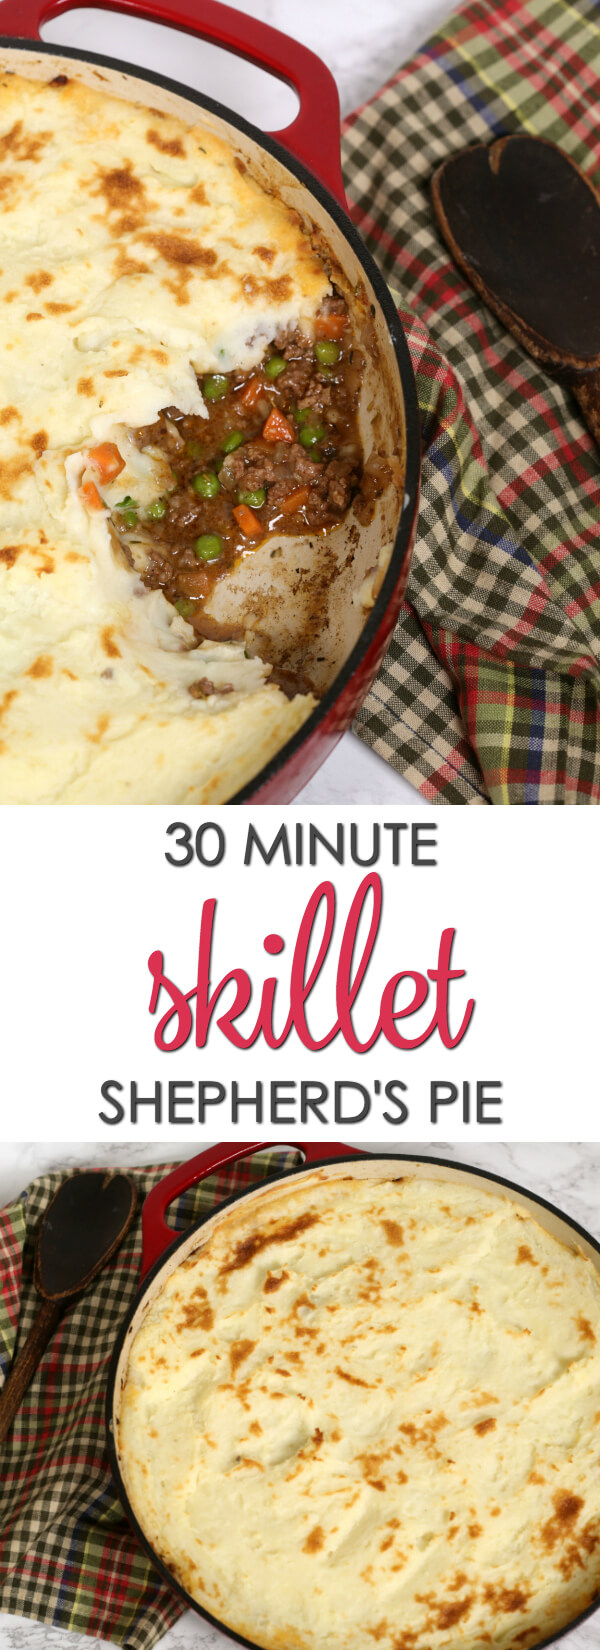 This quick easy Shepherds Pie recipe is one of my favorite easy one pot recipes. It's so tasty and only takes 30 minutes to make. Perfect for busy nights. #Itisakeeper #recipe #onepotrecipe